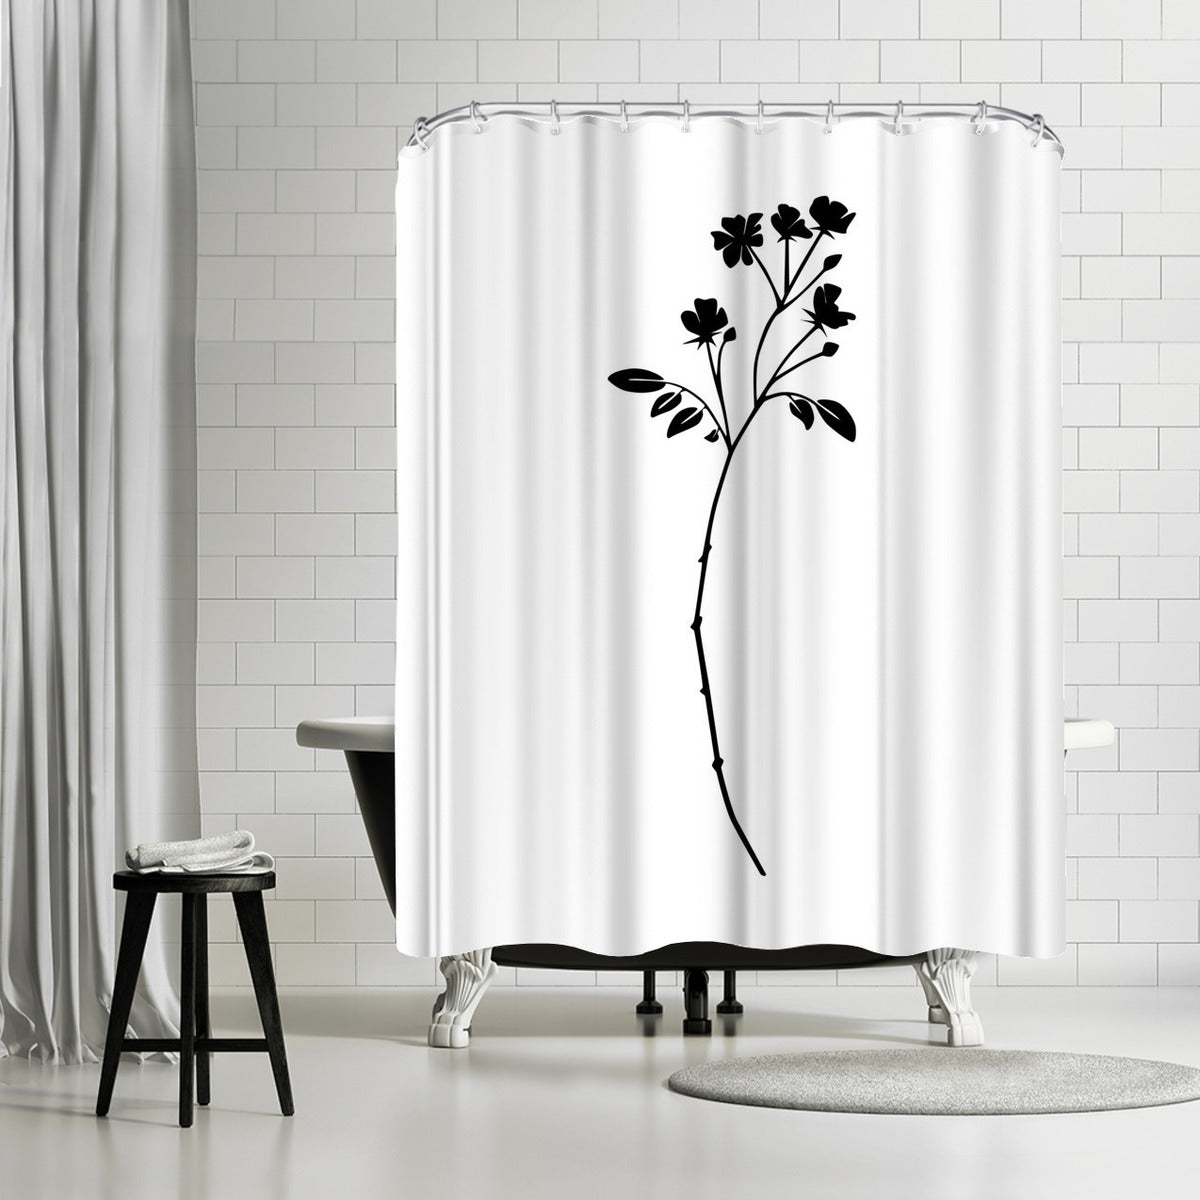 Botanic by Explicit Design Shower Curtain -  - Americanflat